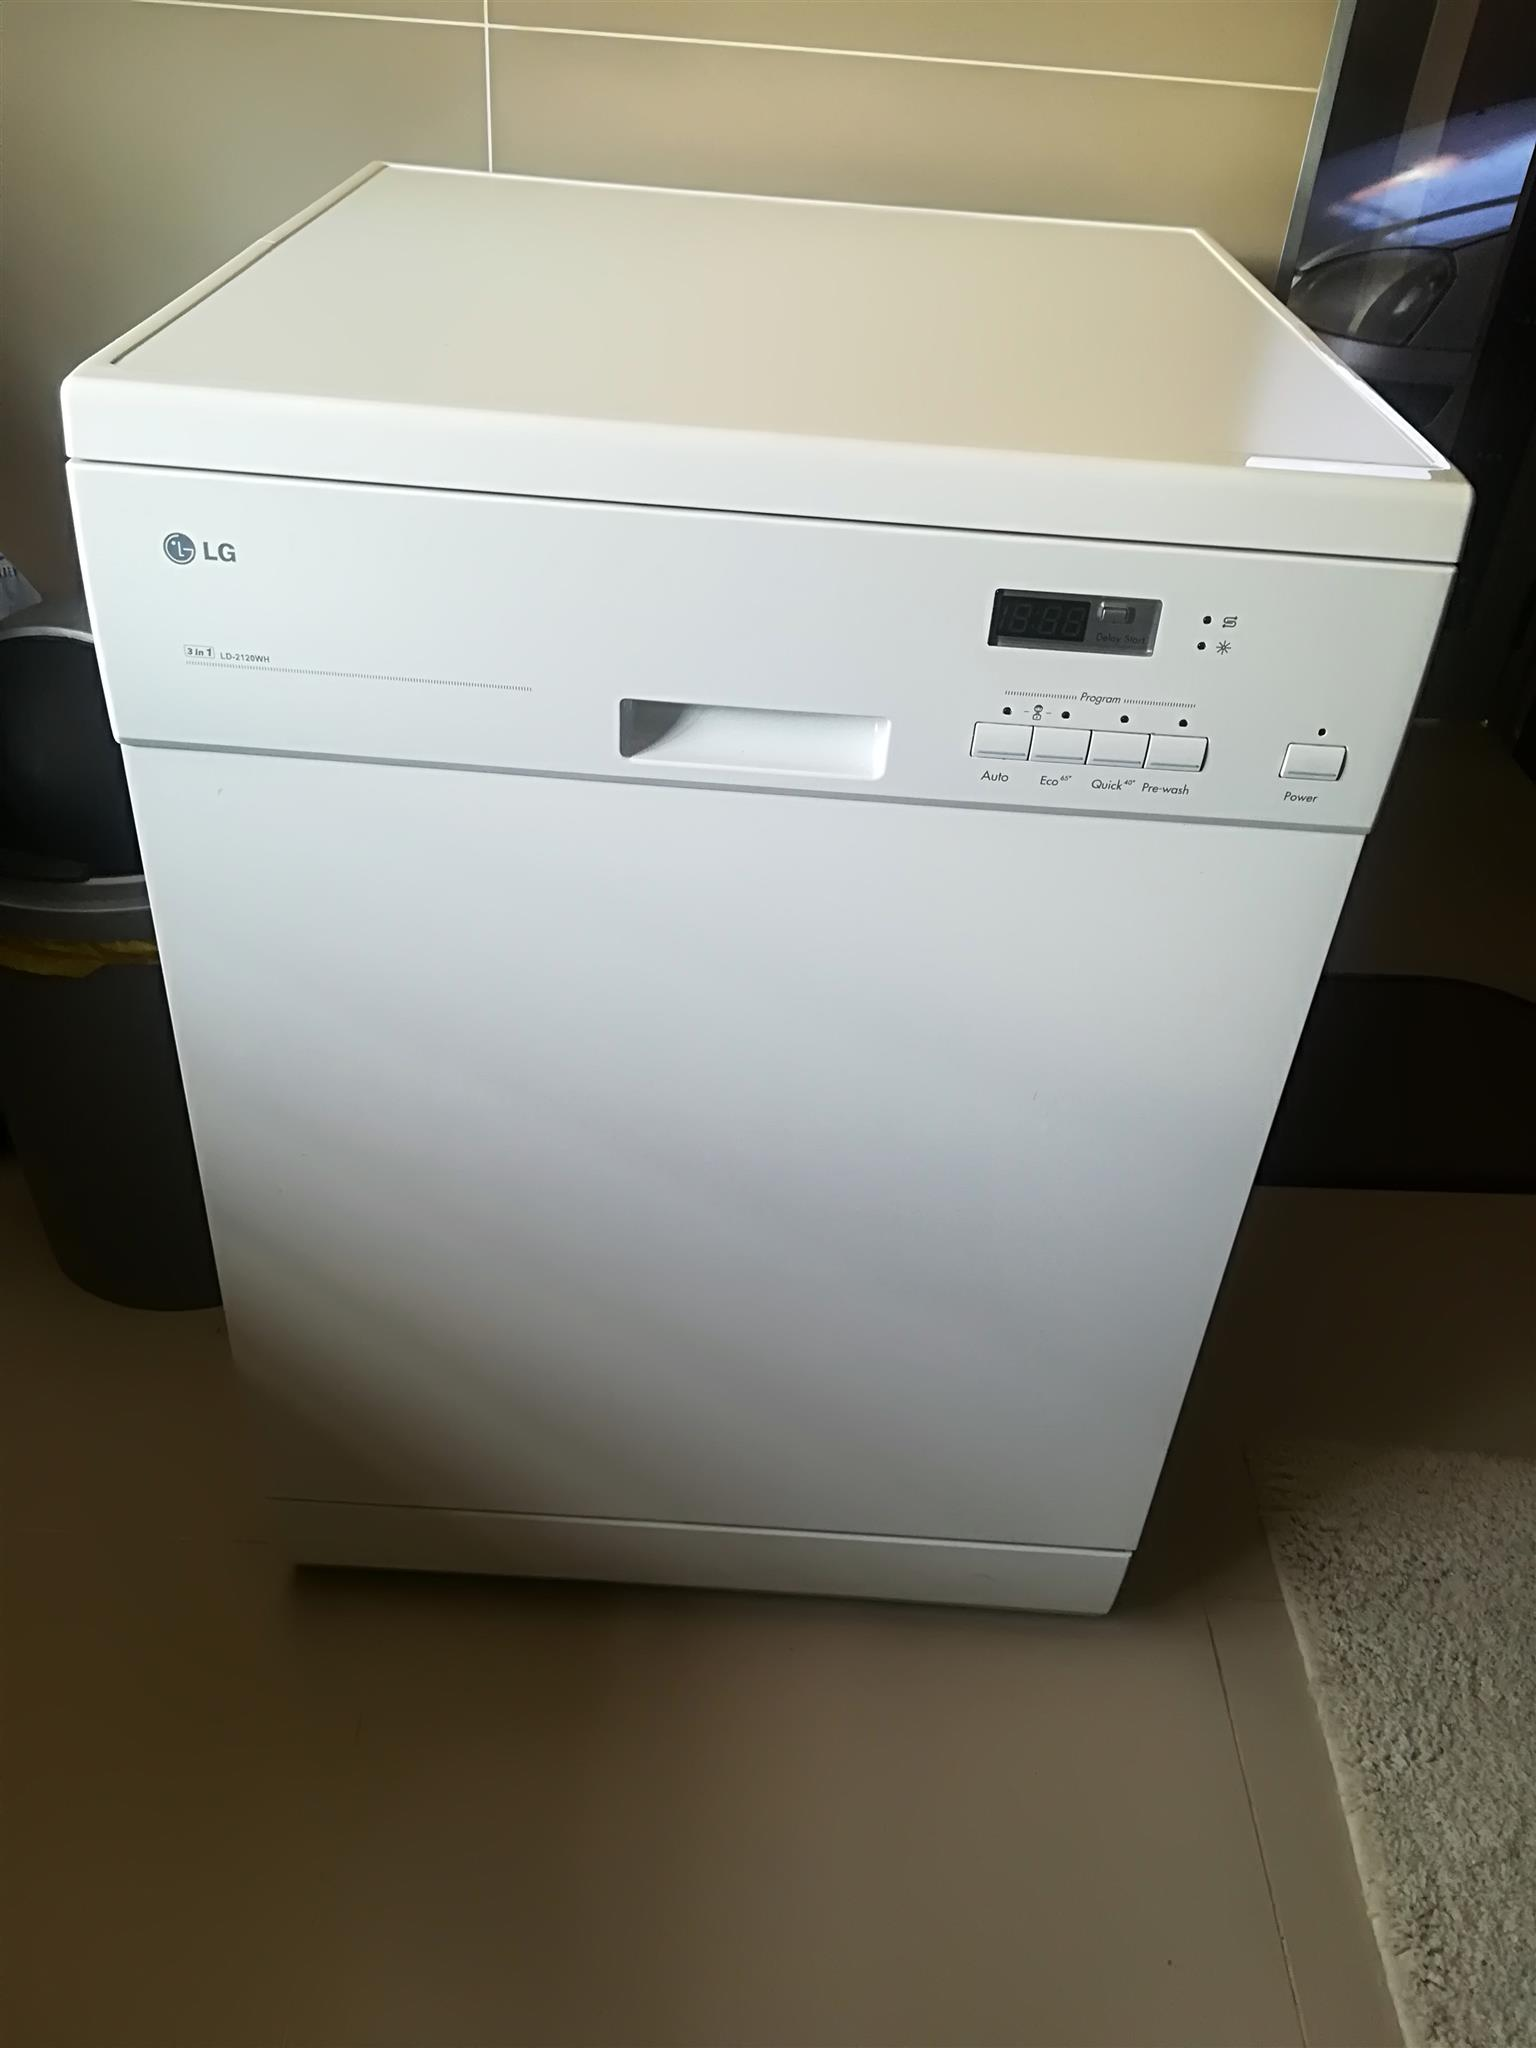 Brand new LG 3in1 Watersaver Dishwasher